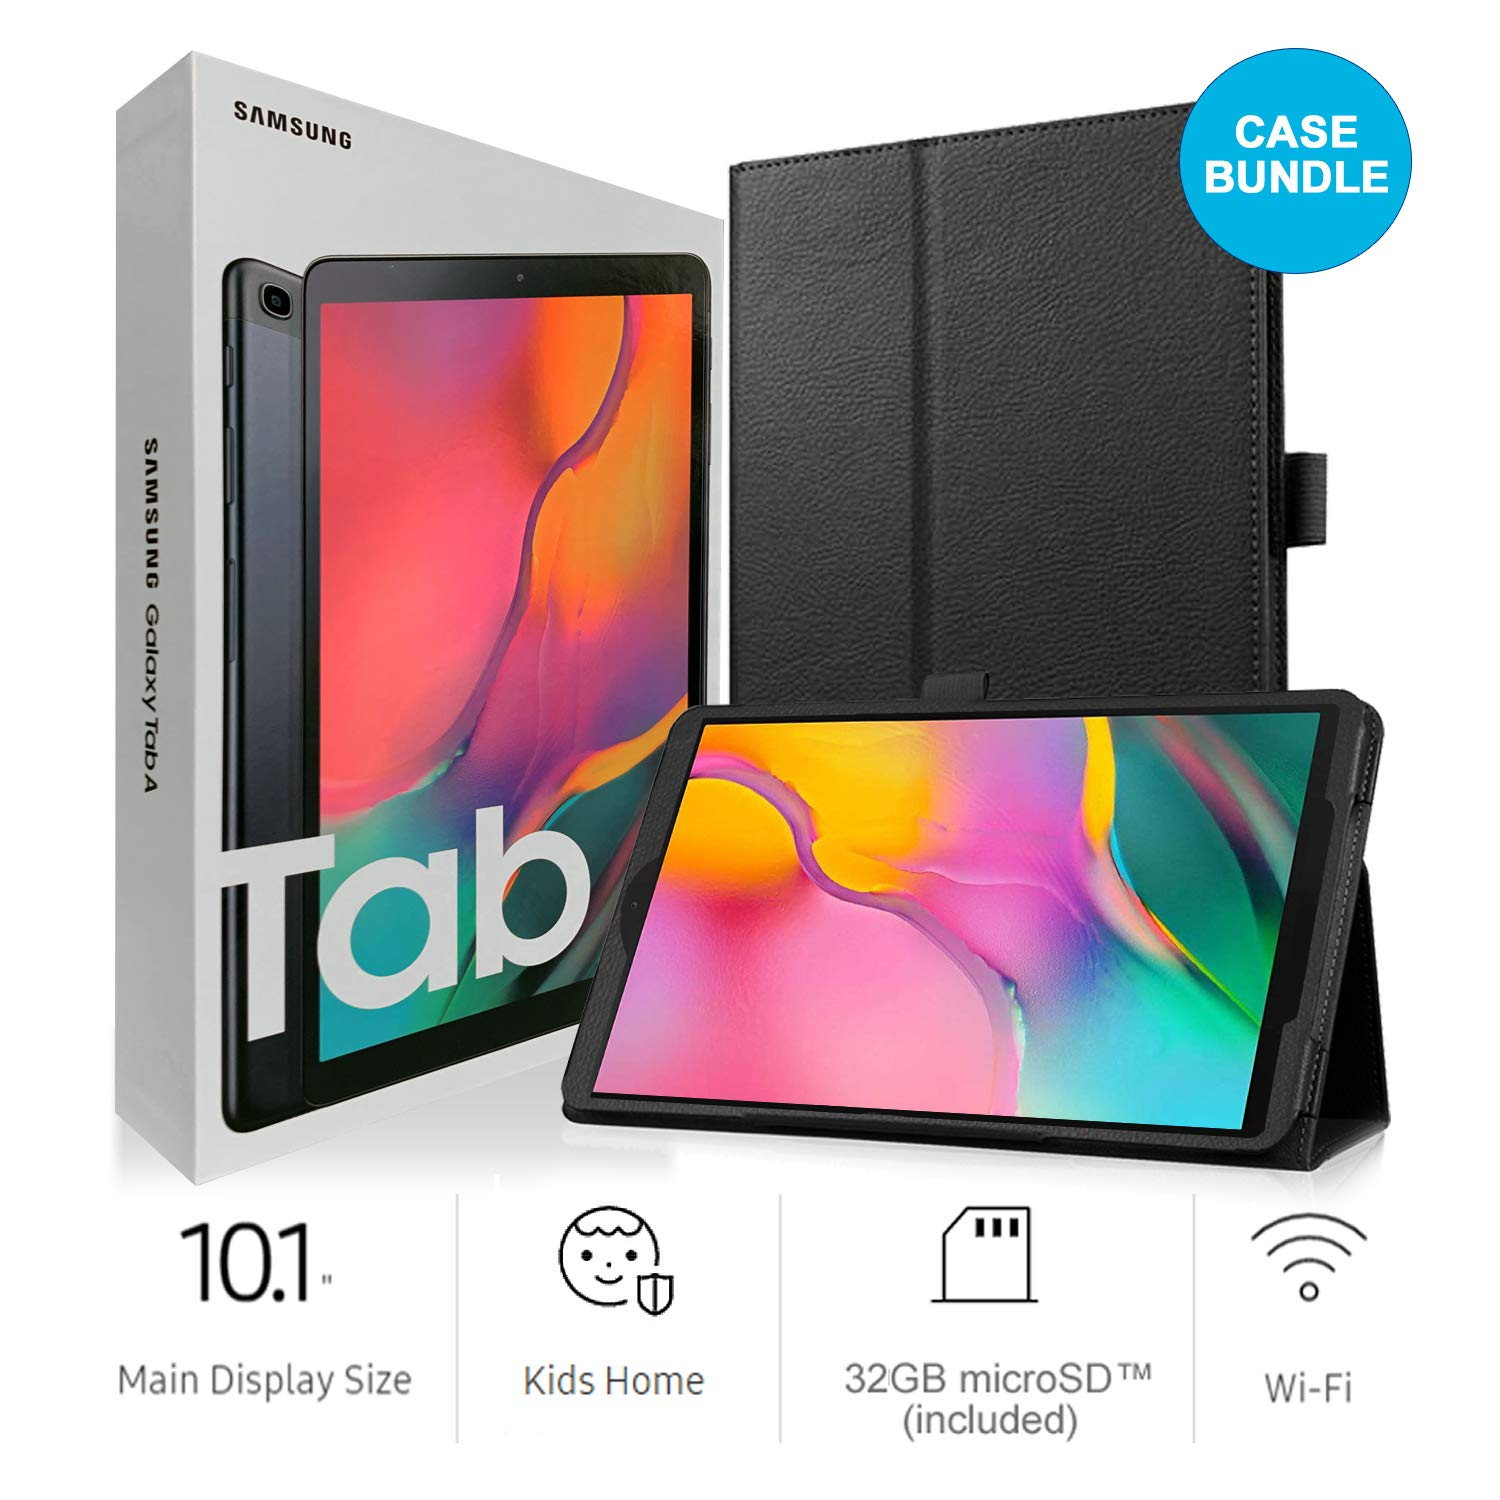 Samsung Galaxy Tab A SM-T510 10.1-Inch Touchscreen 32 GB Tablet (2 GB Ram, Wi-Fi, Android OS, Black) International Version Bundle with Case, Screen Protector, Stylus and 32GB microSD Card